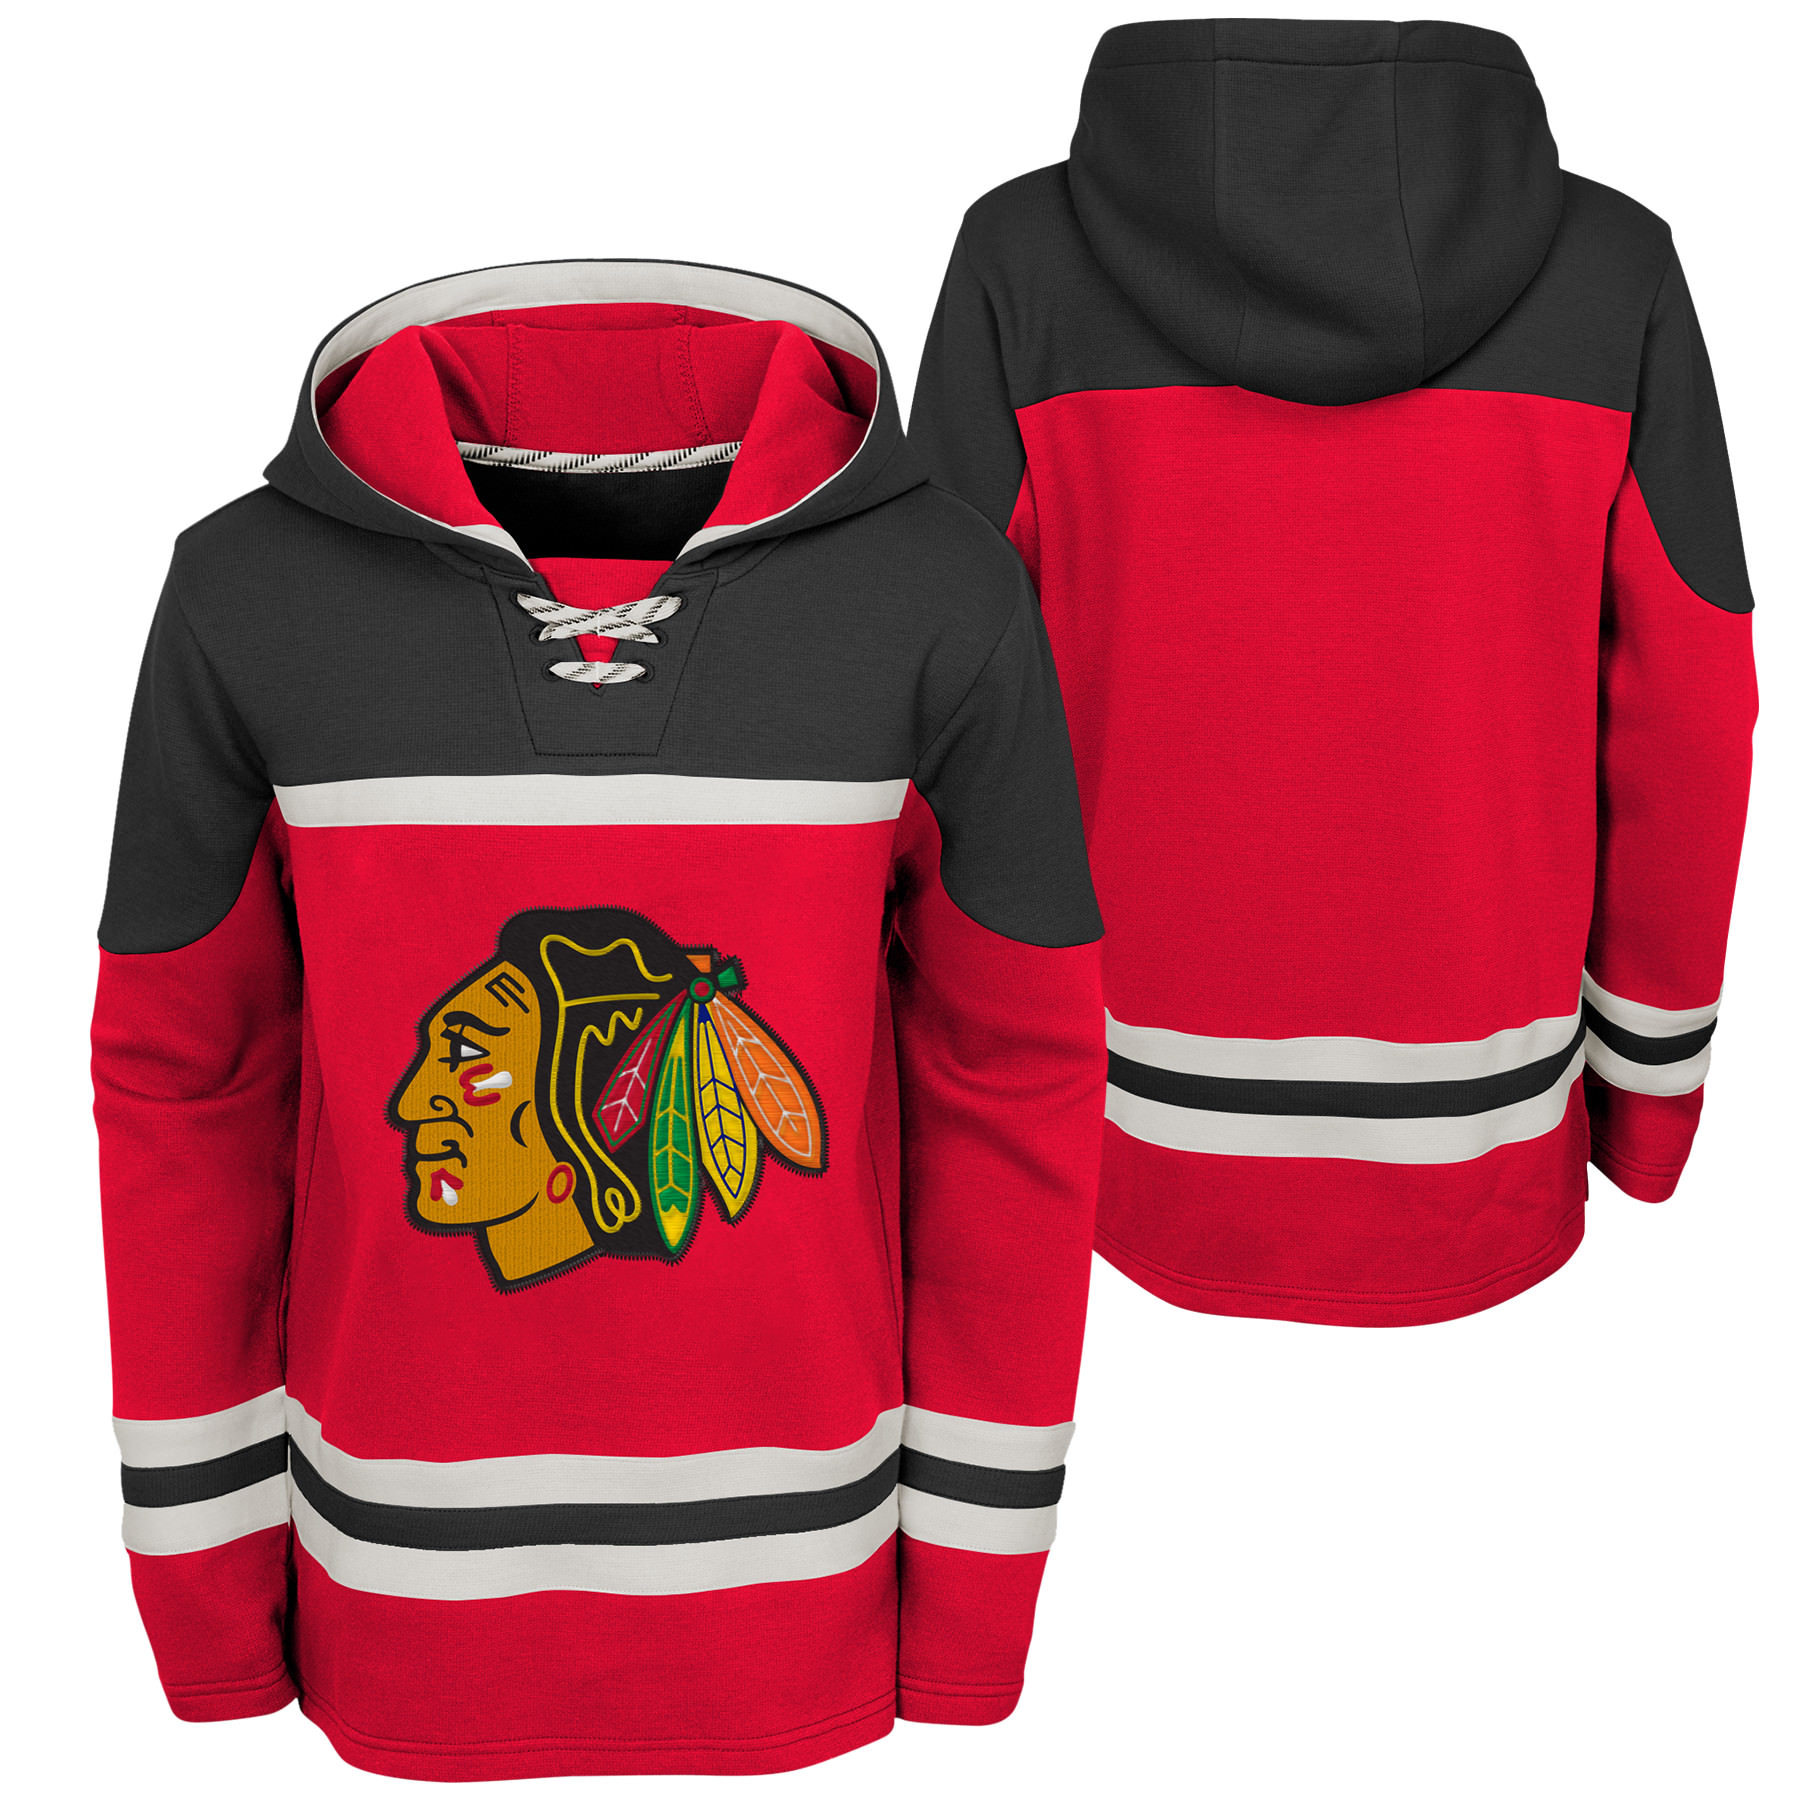 Outerstuff Youth Chicago Blackhawks NHL Asset Hockey Hoodie